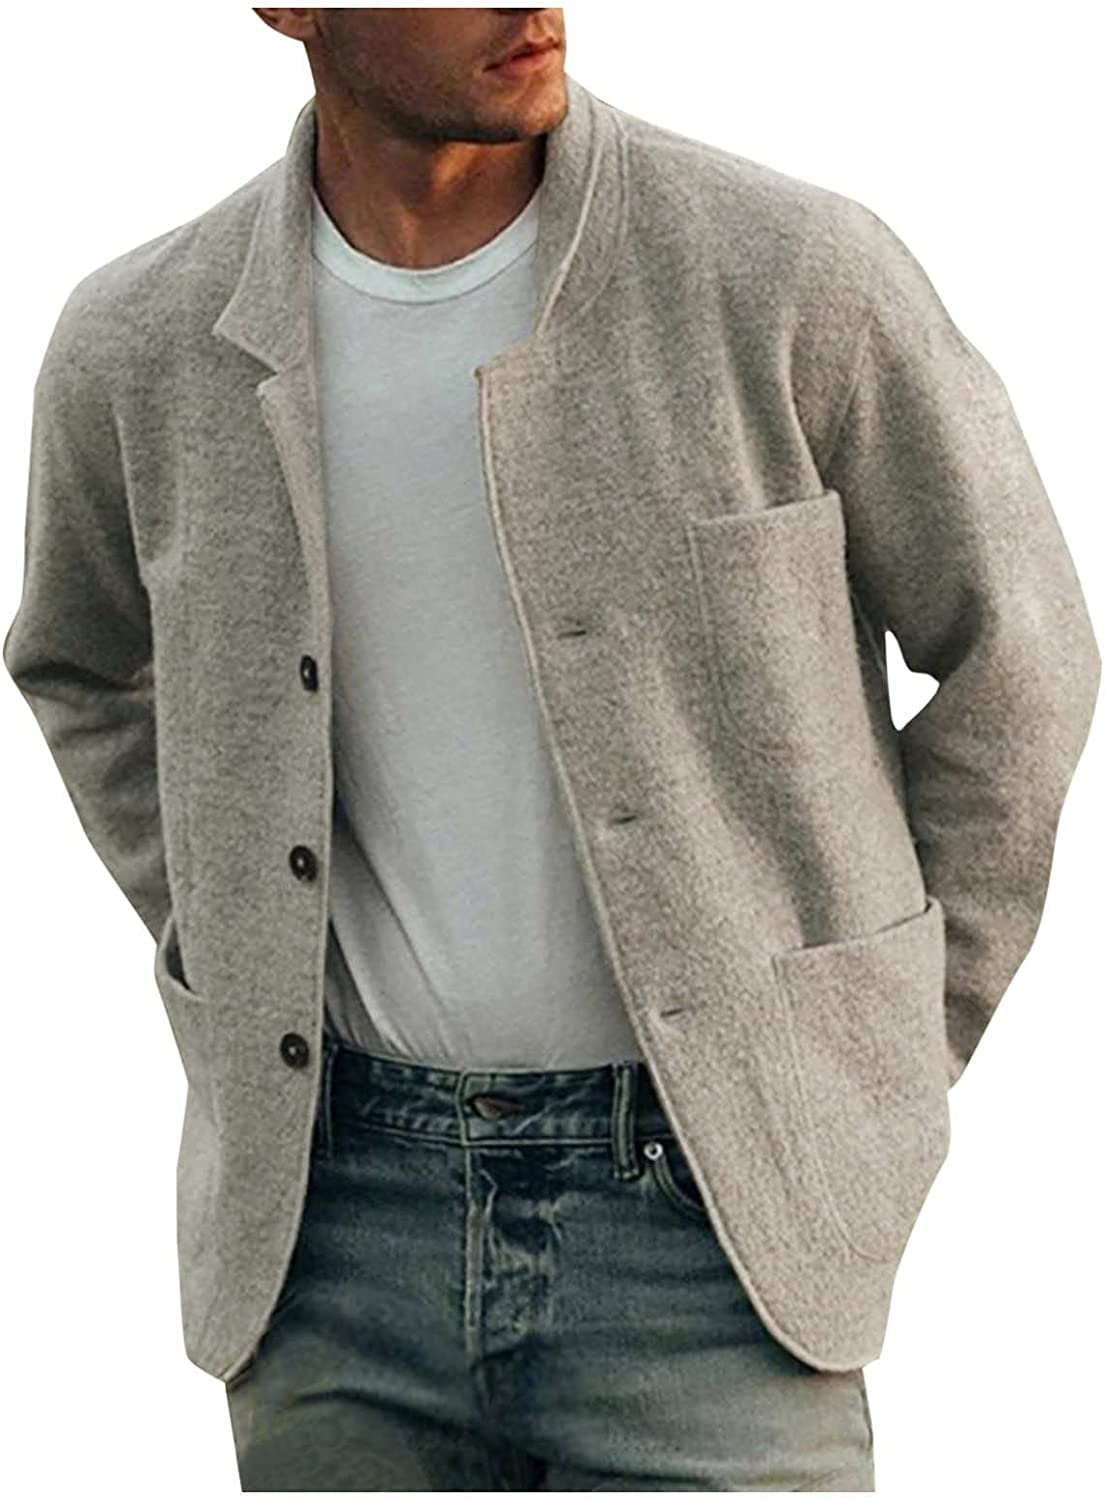 Men's Jackets Lightweight Casual, Mens Cotton Lightweight Jacket Casual Utility Single Breasted Multi-pocketed Suit